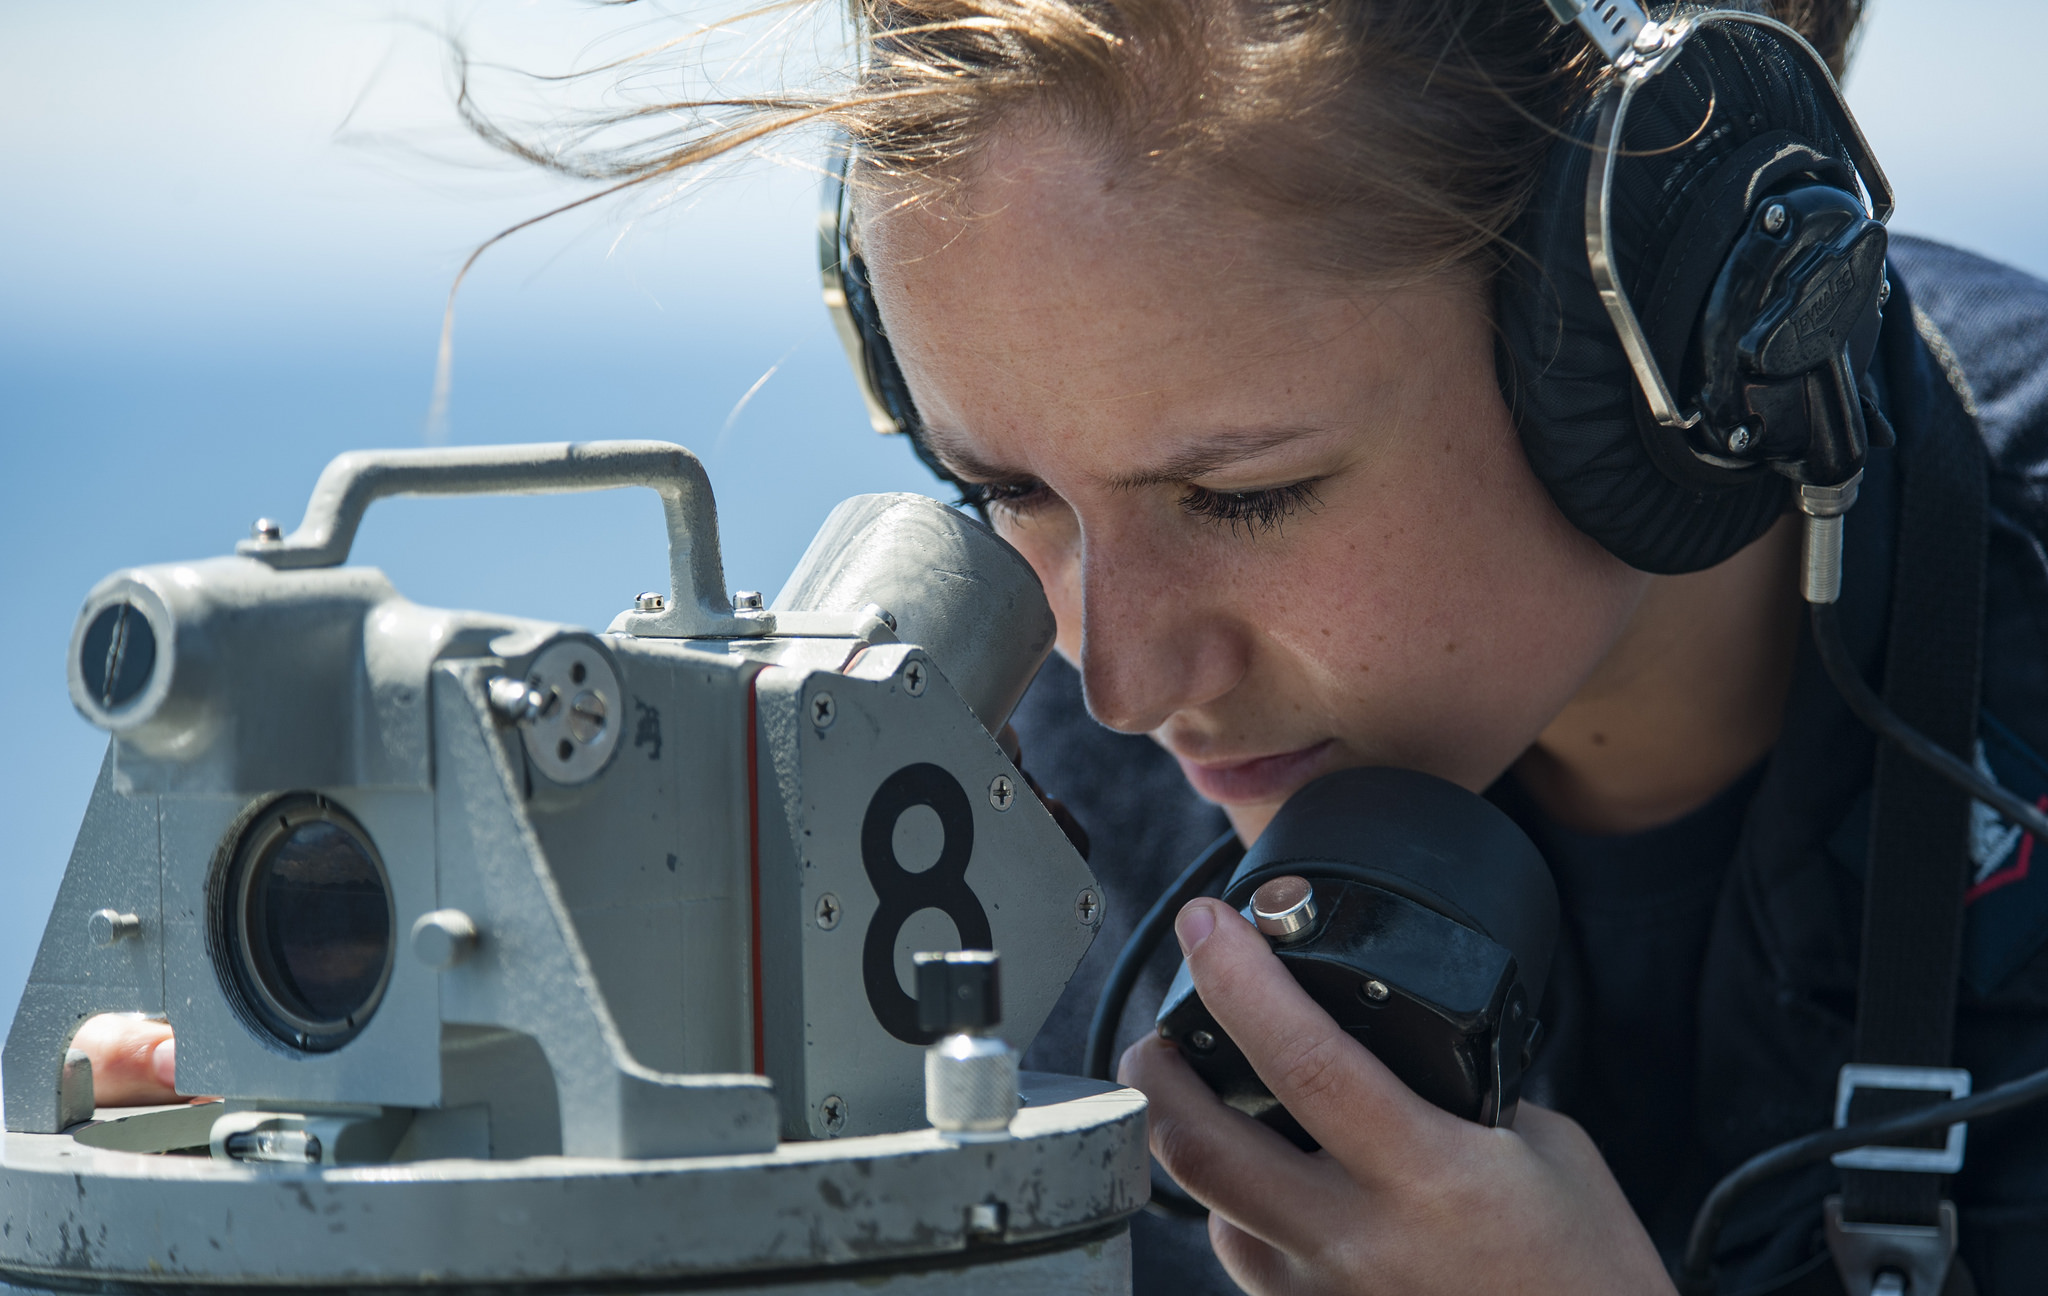 Quartermaster 3rd Class Meghin Warren reads bearings from a telescopic alidade aboard the amphibious assault ship USS Wasp (LHD 1). Wasp is transiting to Sasebo, Japan to conduct a turnover with the USS Bonhomme Richard (LHD 6) as the forward-deployed flagship of the amphibious forces in the U.S. 7th Fleet area of operations. (Mass Communication Specialist 3rd Class Levingston Lewis/Navy)